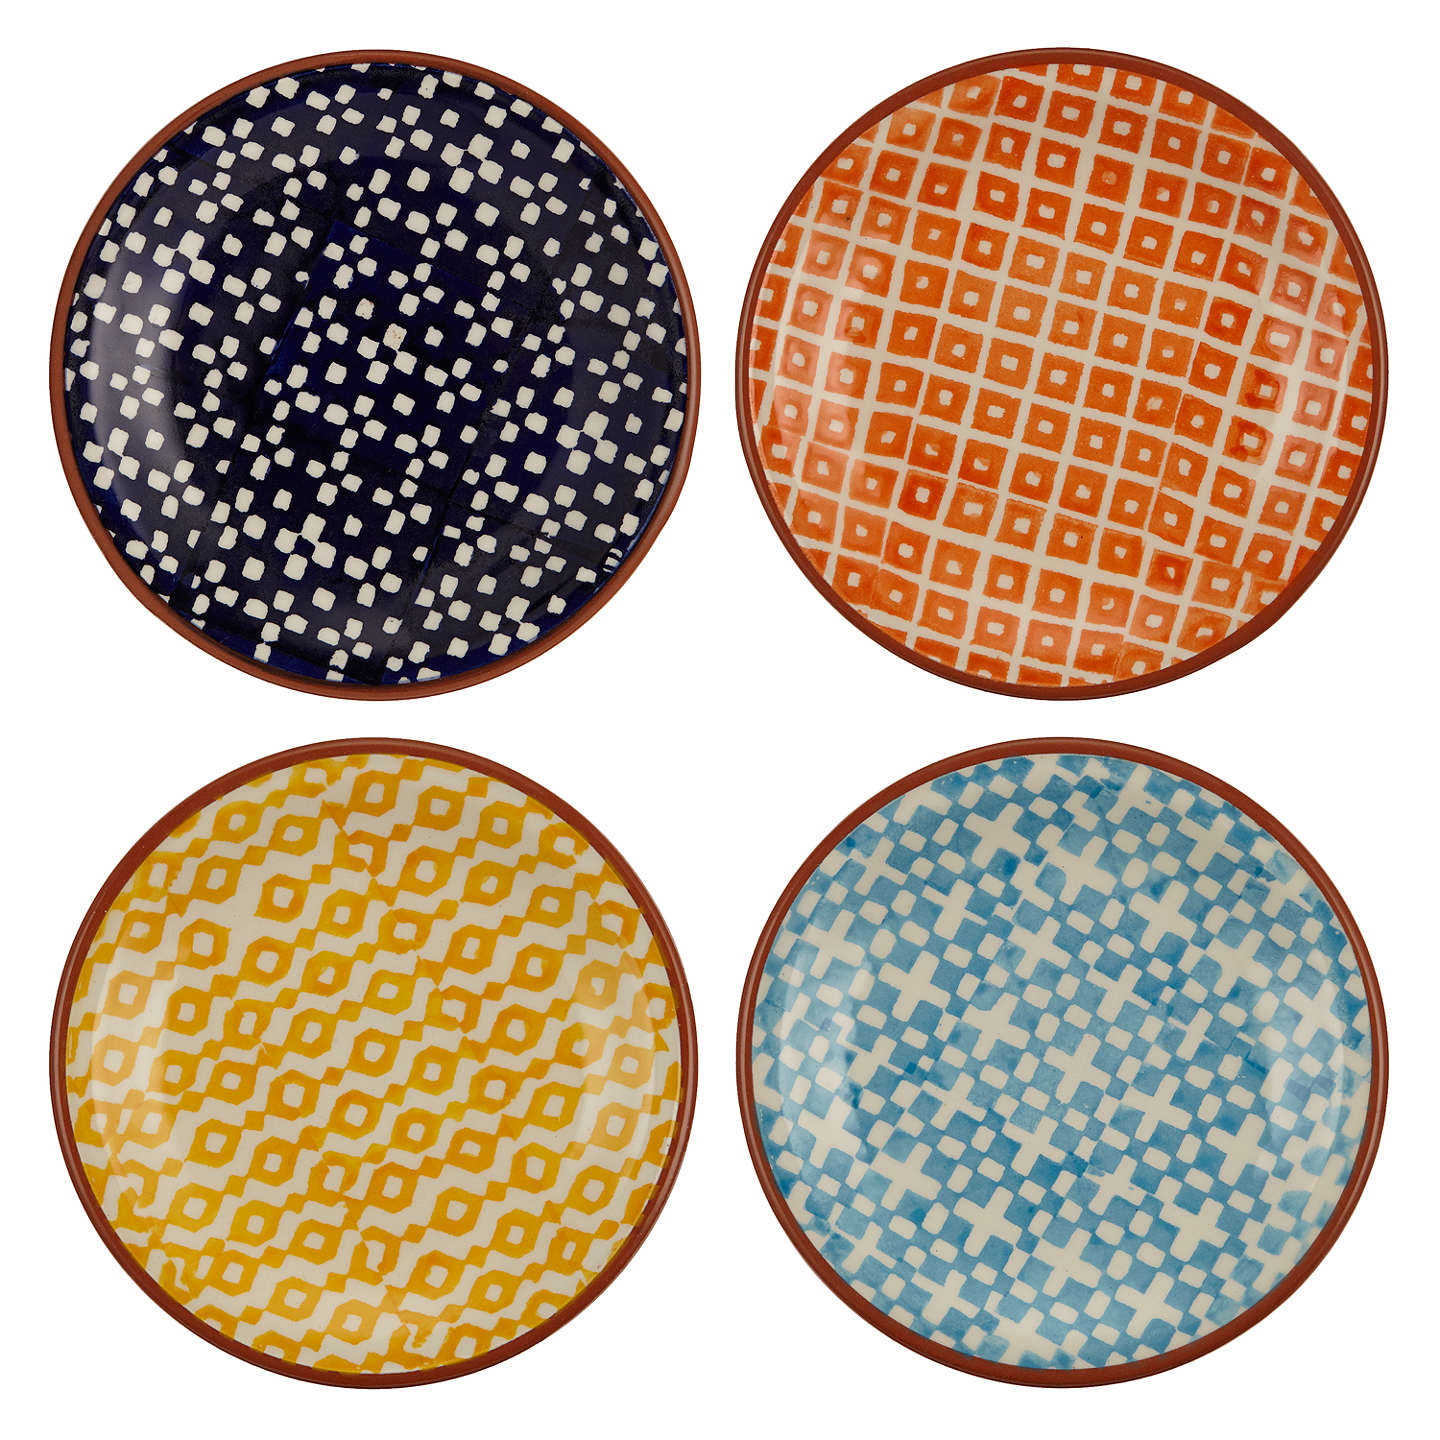 BuyJohn Lewis Alfresco Tapas Plates Patterned Set of 4 Online at johnlewis.com ...  sc 1 st  John Lewis : john lewis christmas tableware - pezcame.com